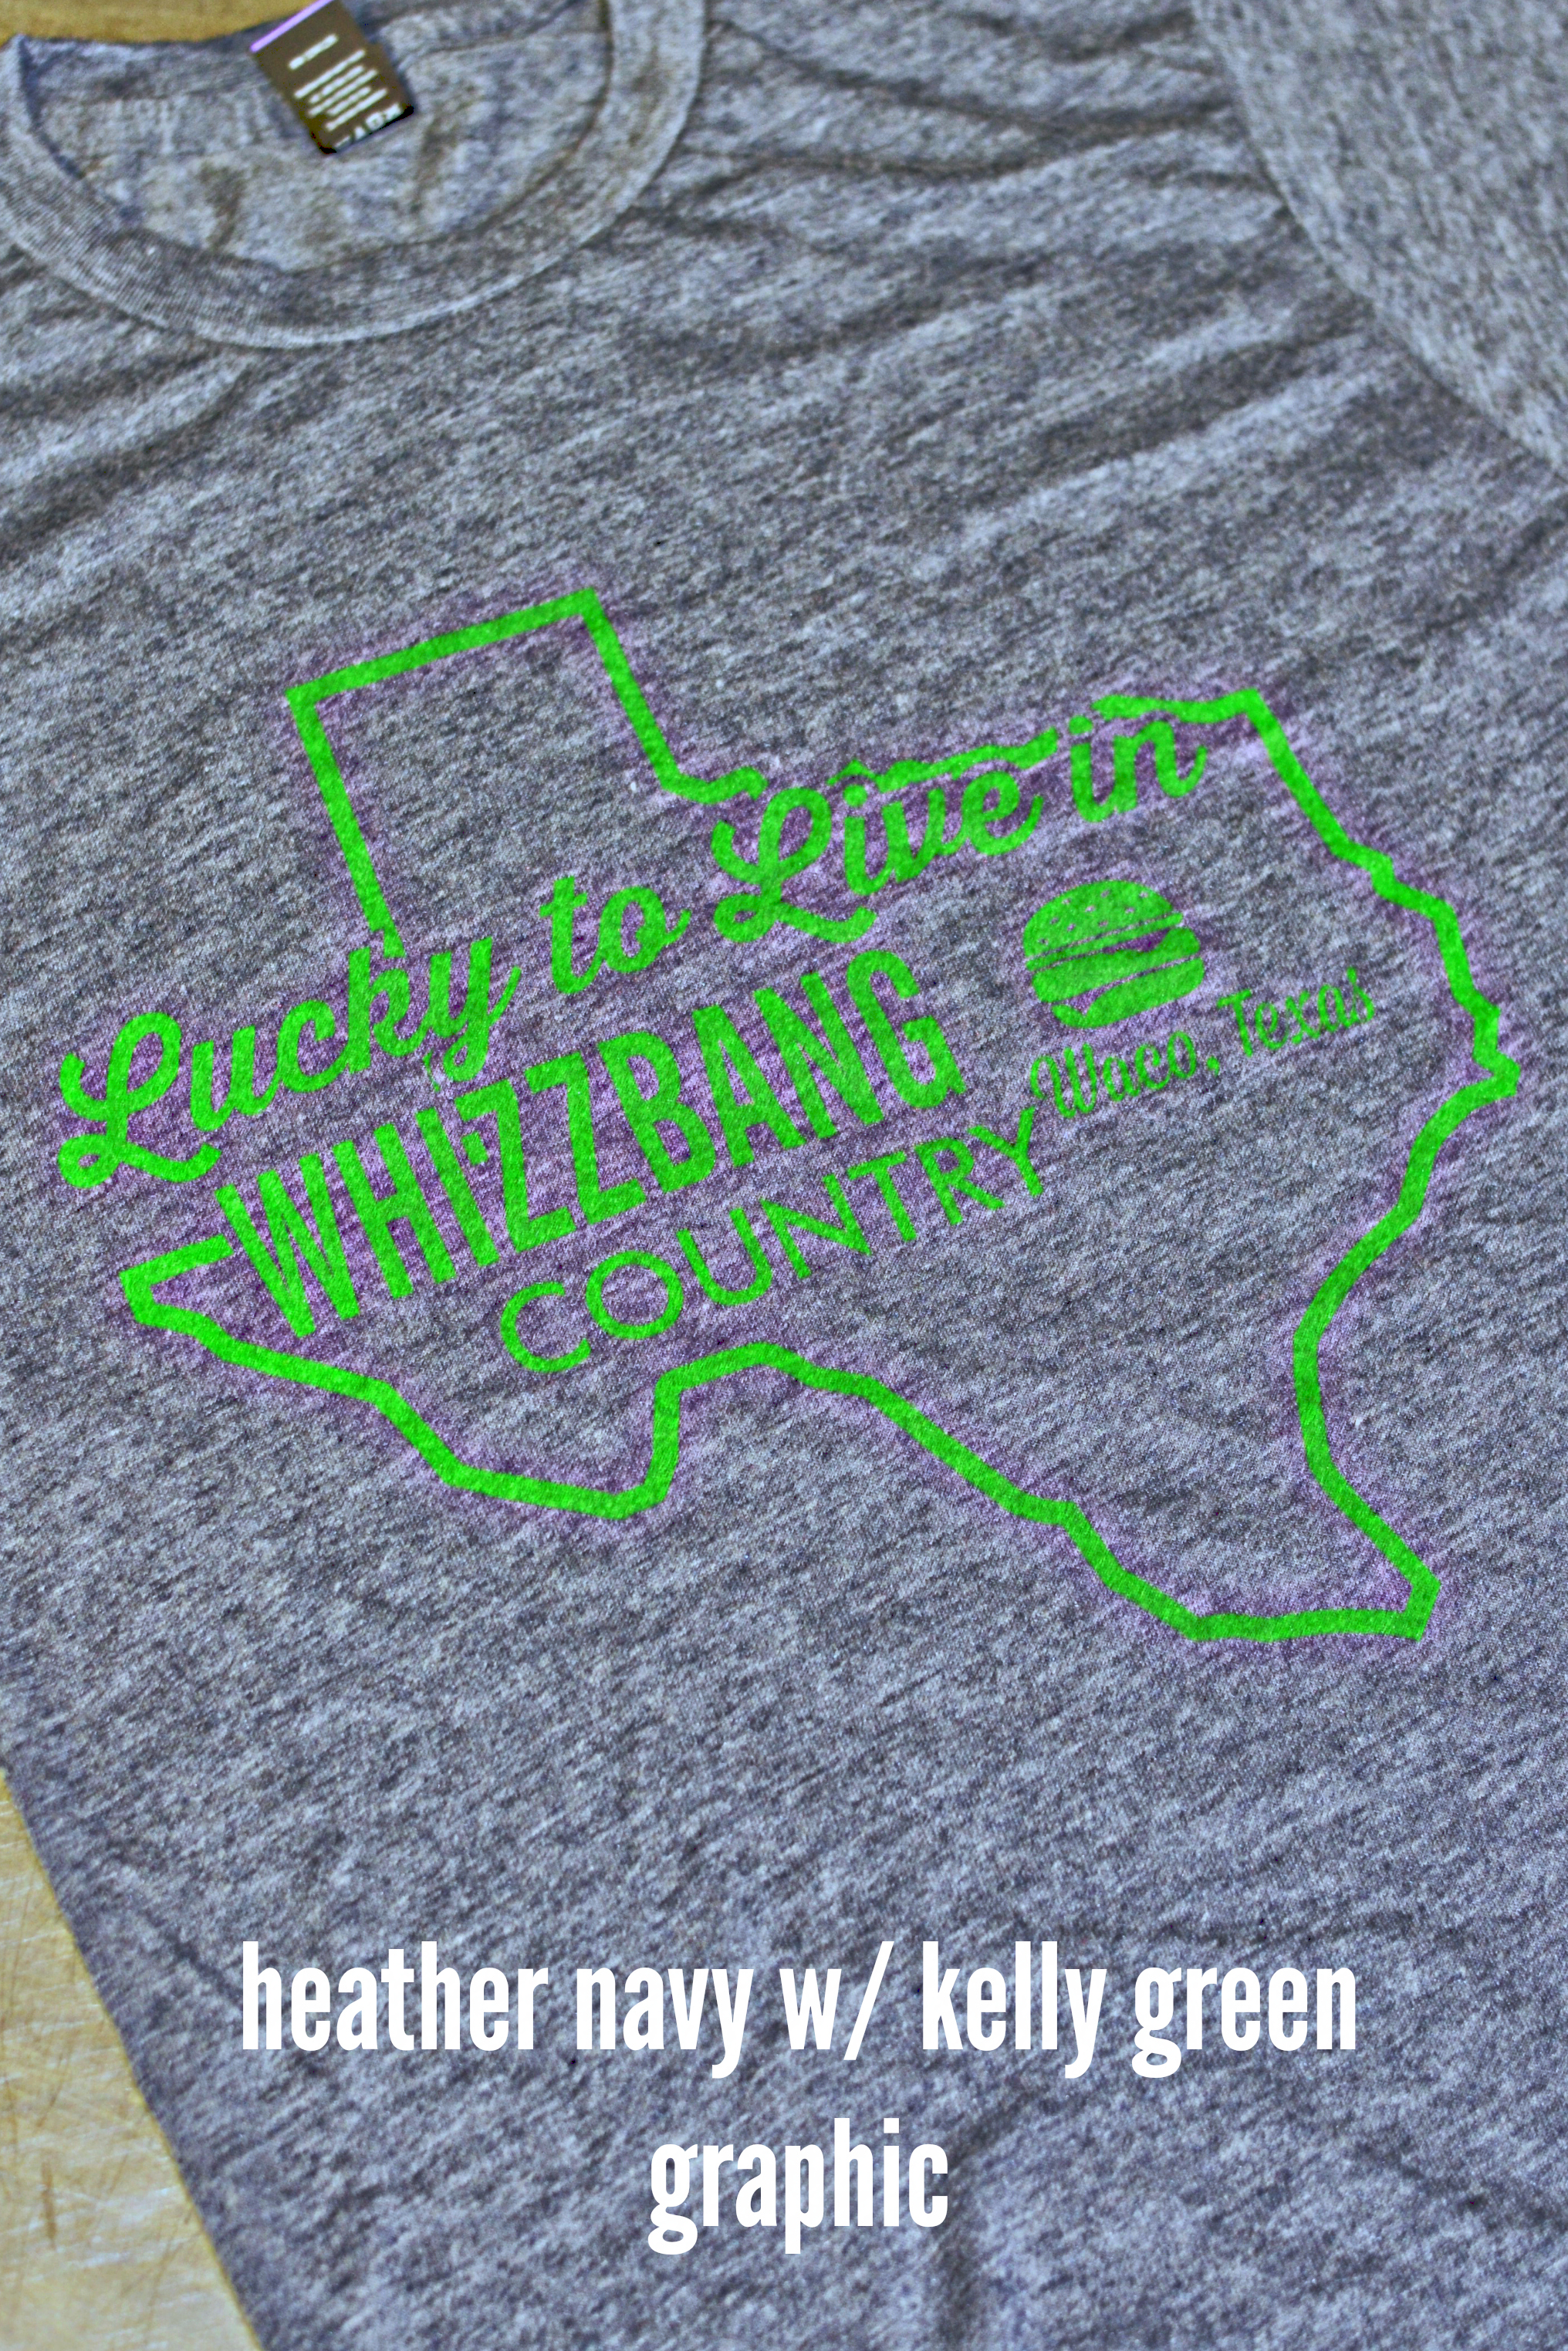 Heather Navy w/ Kelly Green Texas Whizzbang T-Shirt